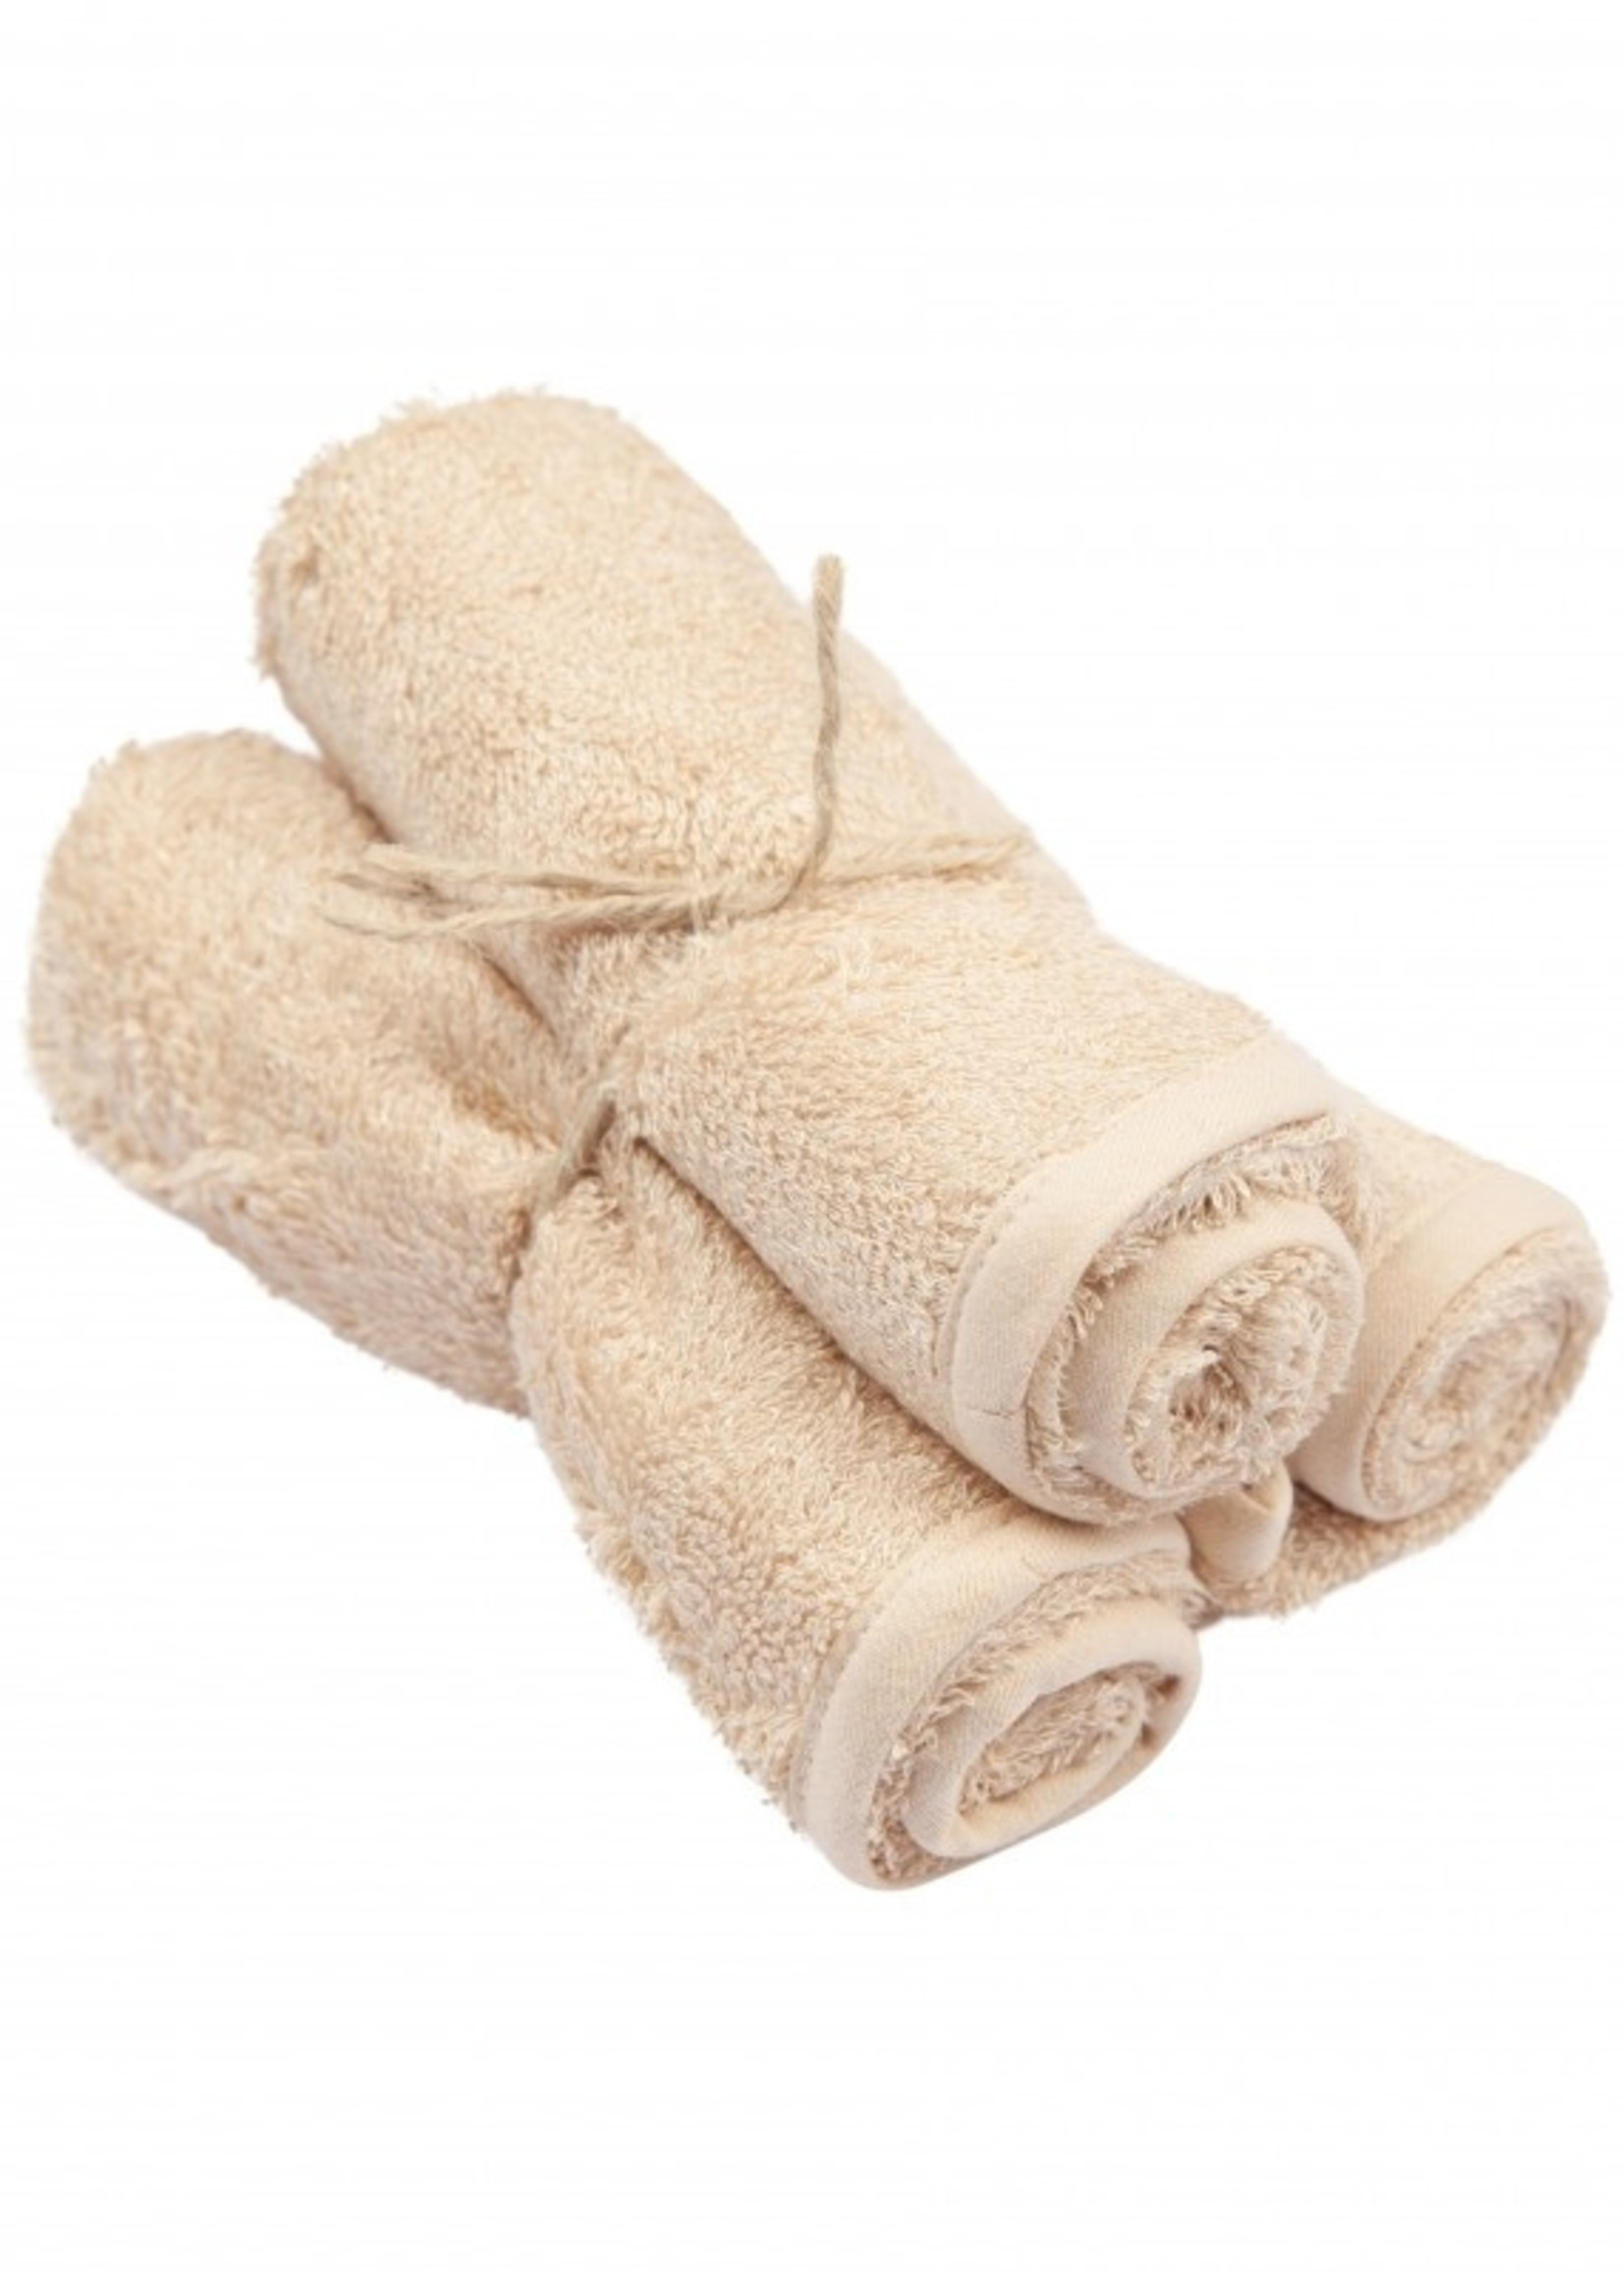 Timboo Set 3 Small Towels - Frosted Almond